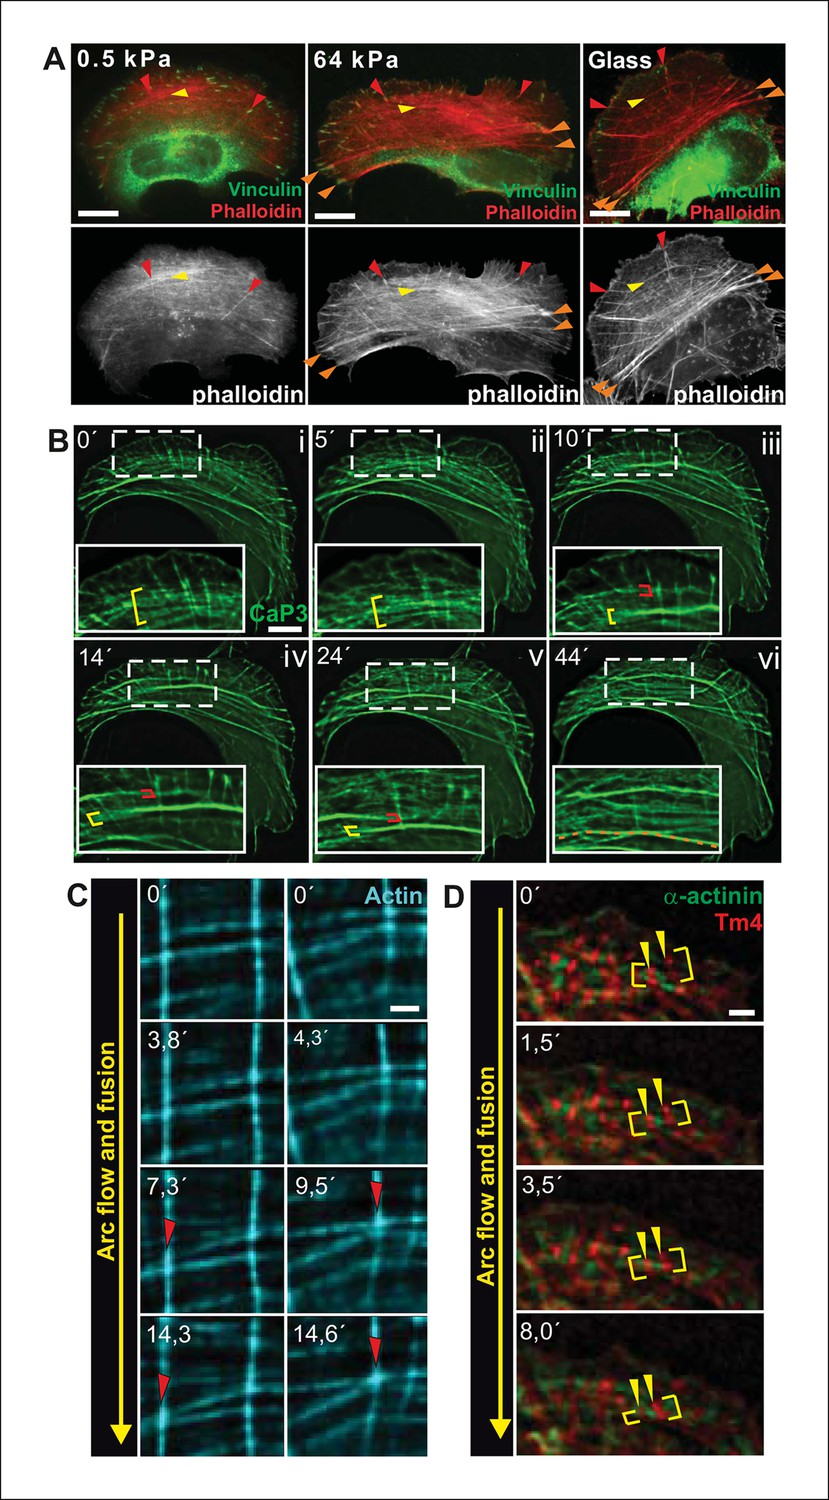 Figures And Data In Generation Of Contractile Actomyosin Bundles Electrical Fuses On Red Box Transverse Arcs Fuse During Centripetal Flow To Generate A Ventral Stress Fiber